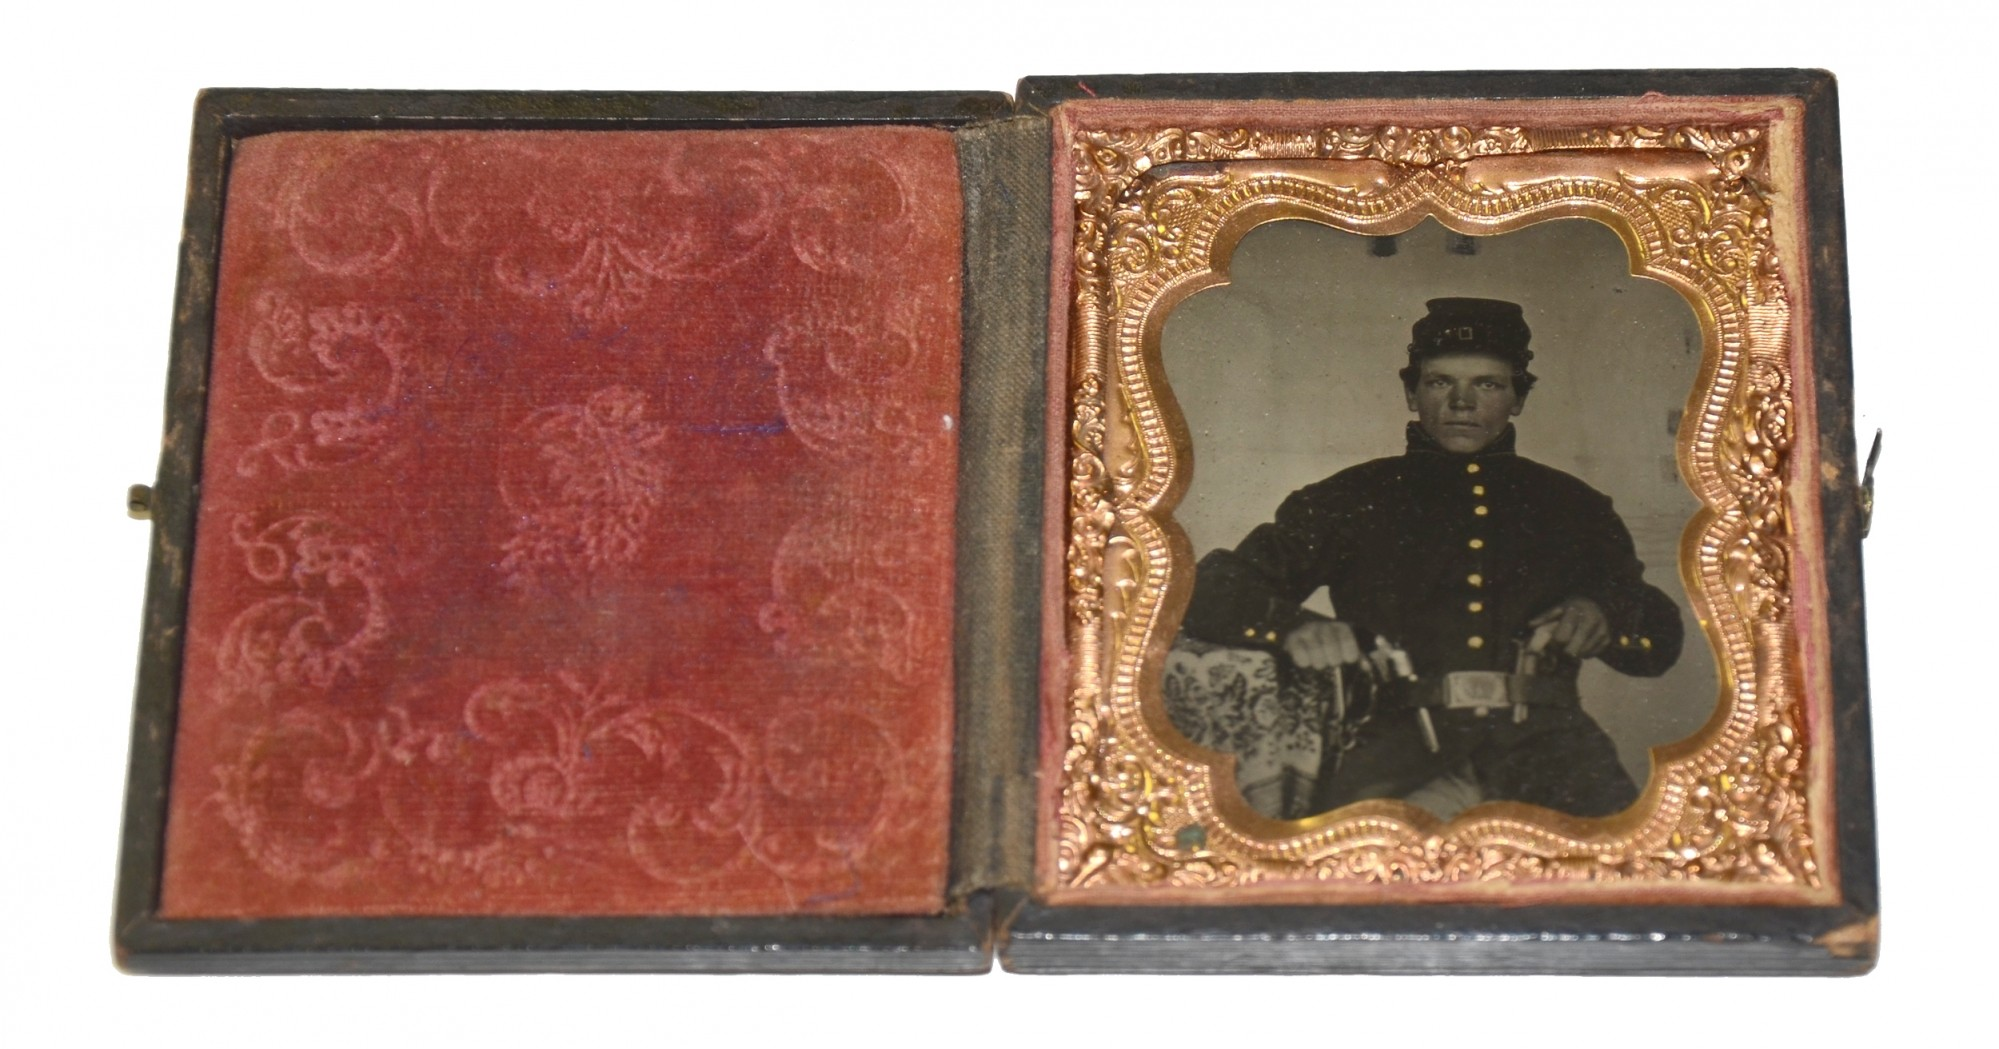 SIXTH PLATE TINTYPE AND LADDER BADGE ID'D TO 124TH ILLINOIS SOLDIER WHO CLAIMED A CONNECTION TO BOTH ABRAHAM LINCOLN & JEFFERSON DAVIS